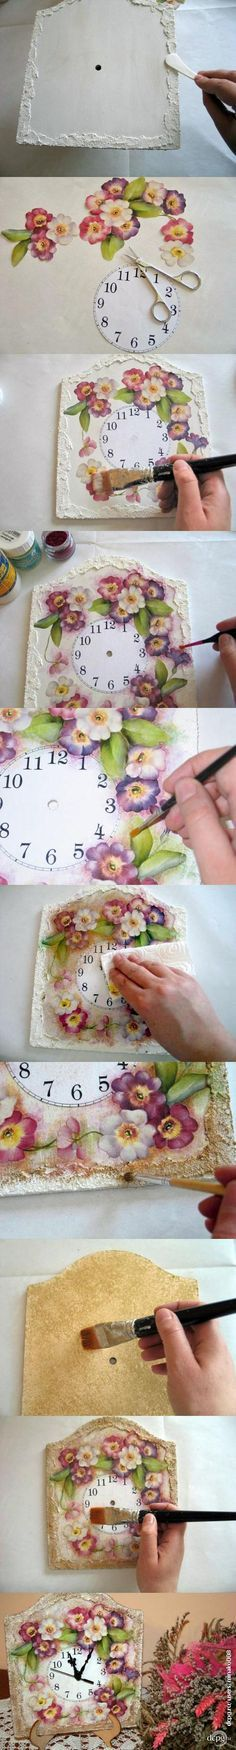 tuto pendule- tuto pendule Clock decorated with decoupage technique ✿⊱╮ - Decoupage Tutorial, Decoupage Art, Decoupage Vintage, Fun Crafts, Diy And Crafts, Arts And Crafts, Paper Crafts, Craft Projects, Projects To Try